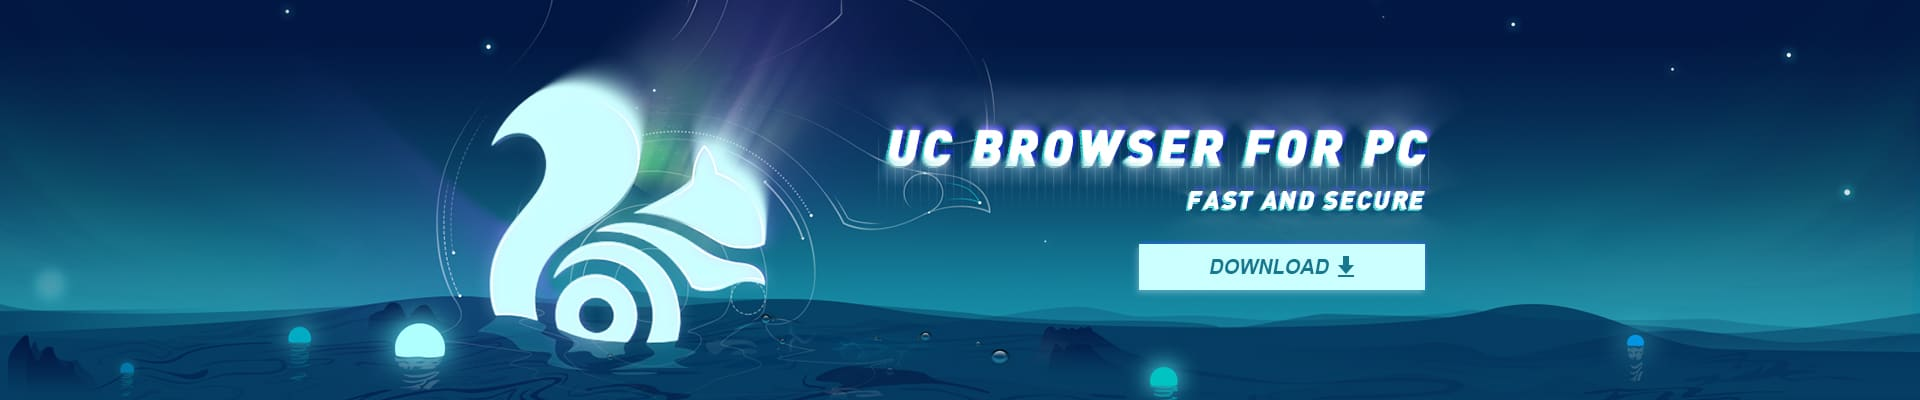 How to download UC browser for Android, PC, iPhone  Java and Windows